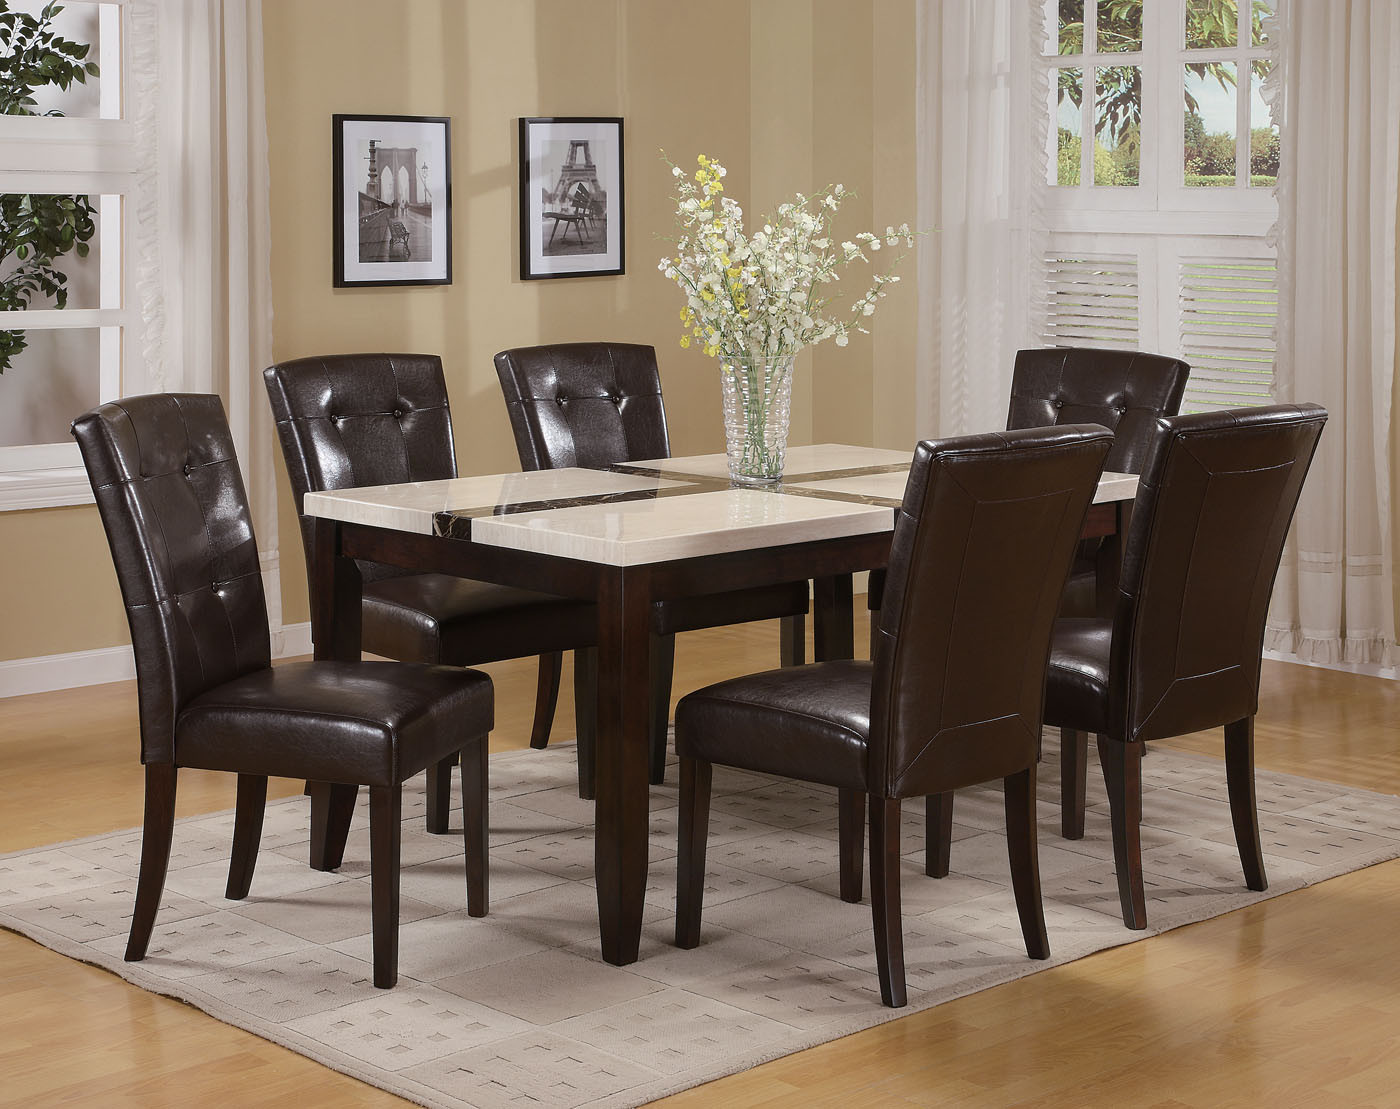 Best ideas about Marble Top Dining Table . Save or Pin ACME Acme Justin White Faux Marble Top Dining Table Set in Now.